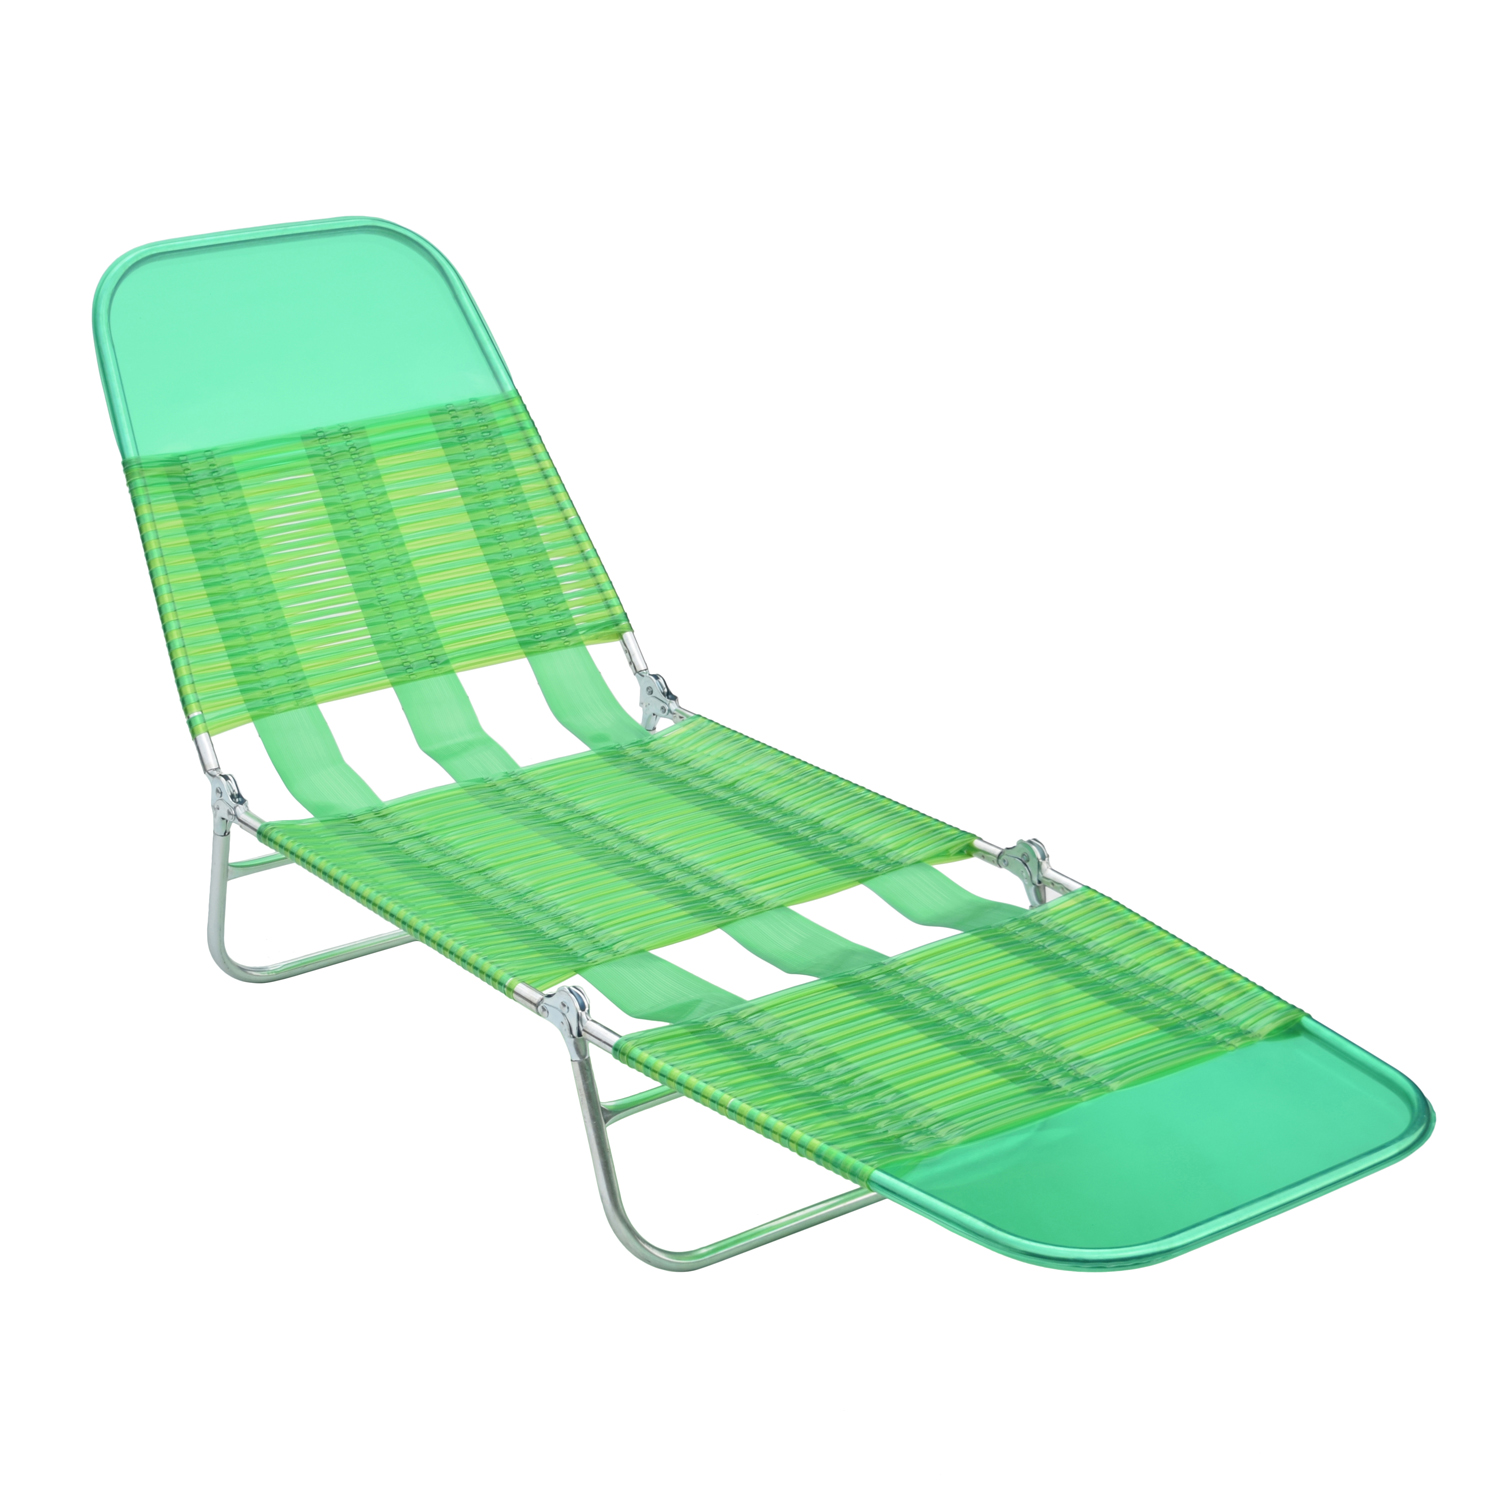 Mainstay Folding Jelly Lounge-Green